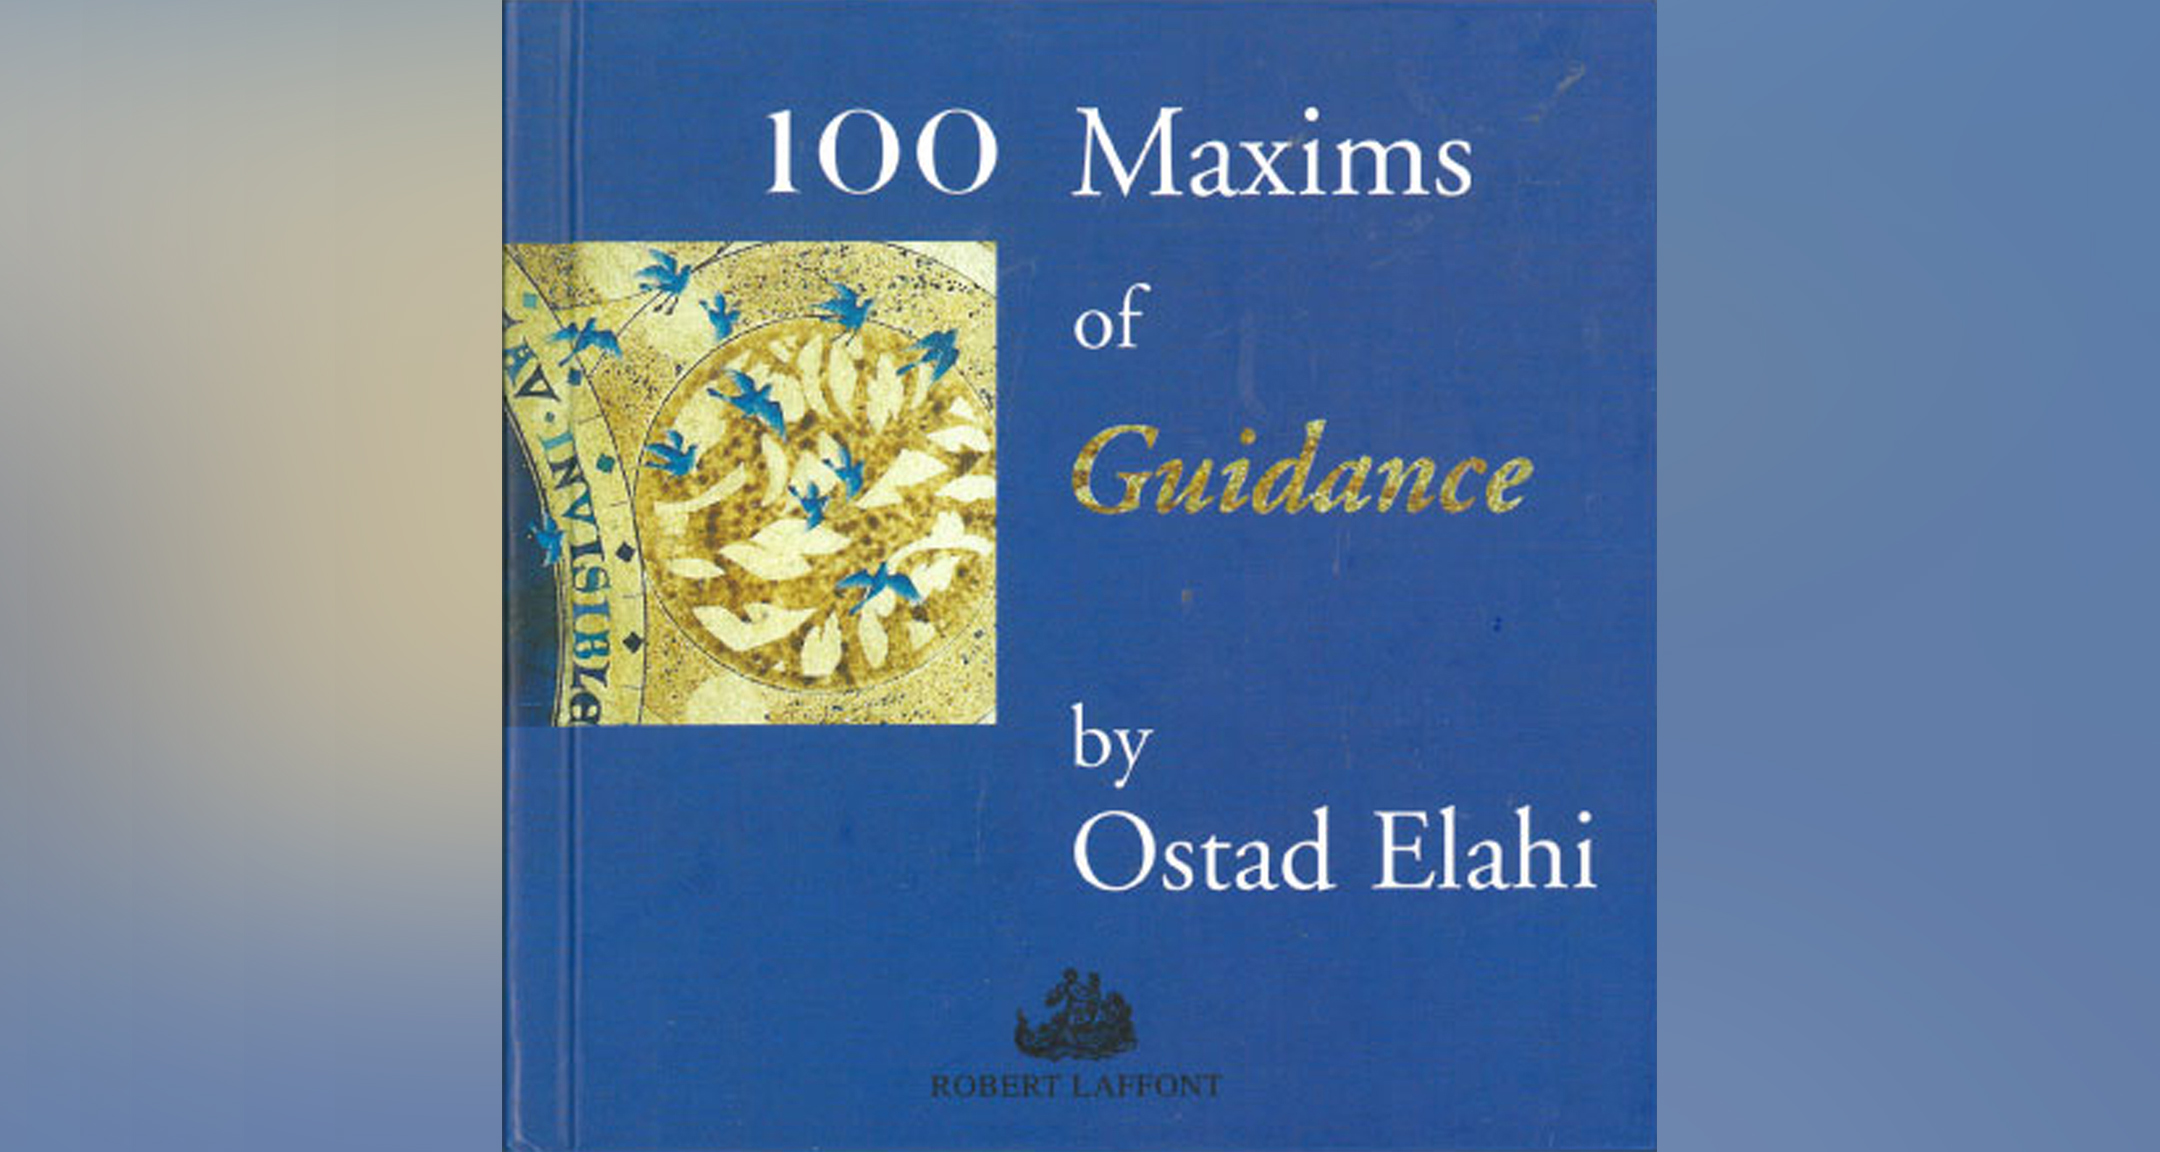 100 Maxims of Guidance